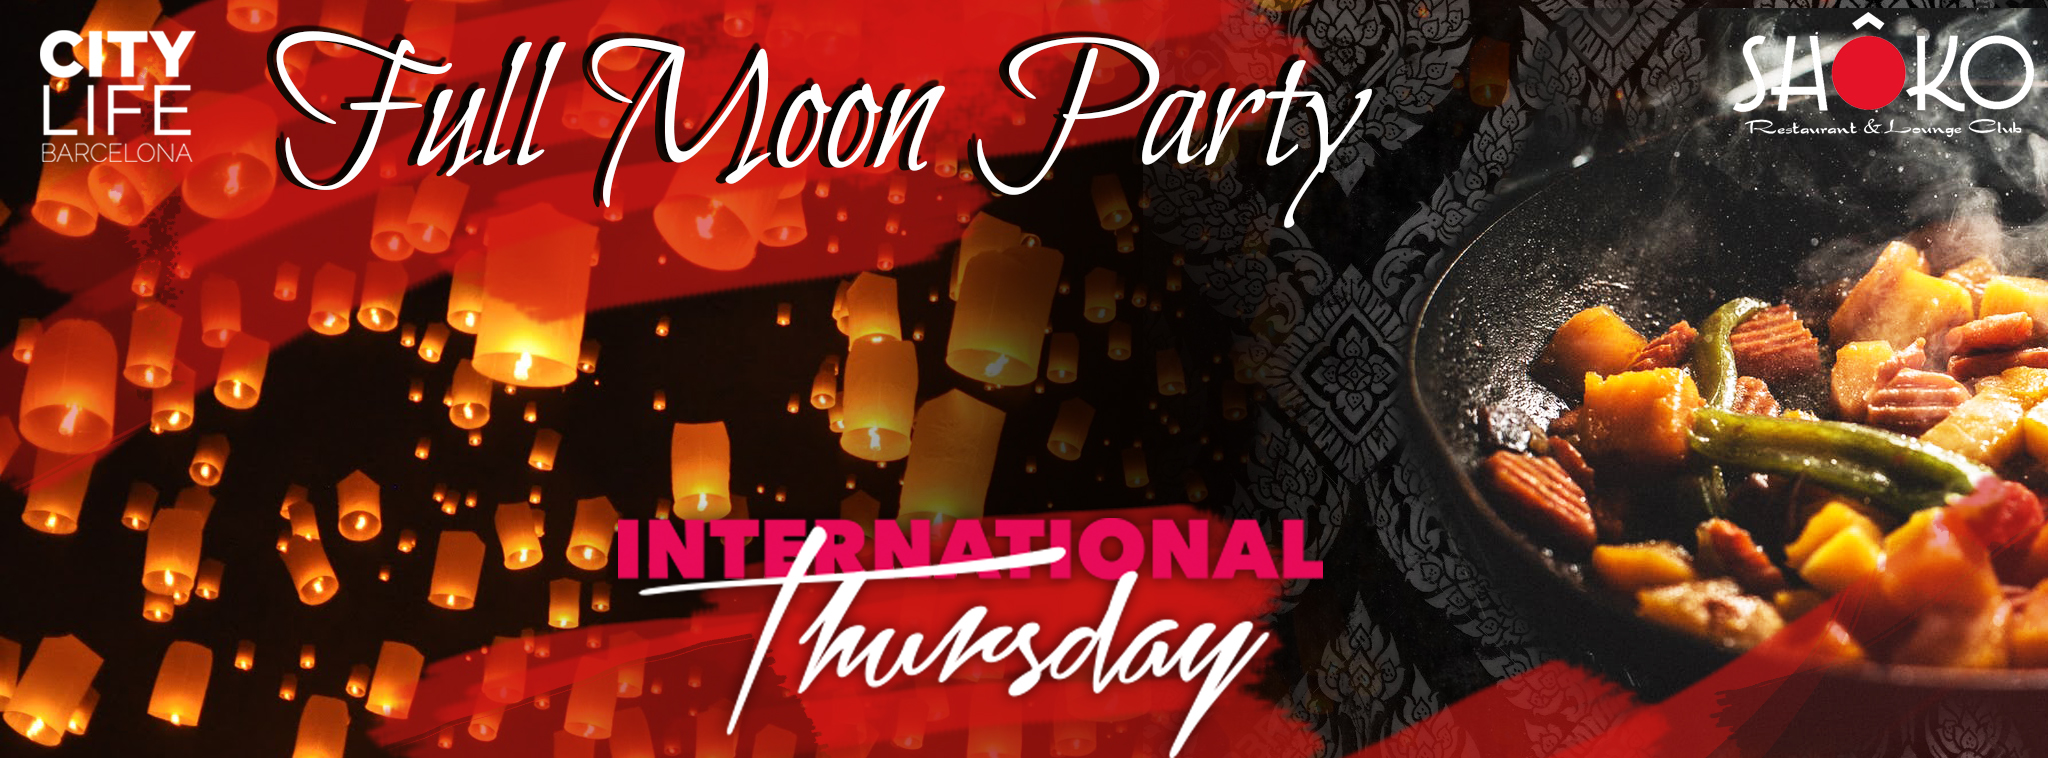 Full Moon Party – Free Dinner, 3 Free Drinks & Party! @Shoko Club!